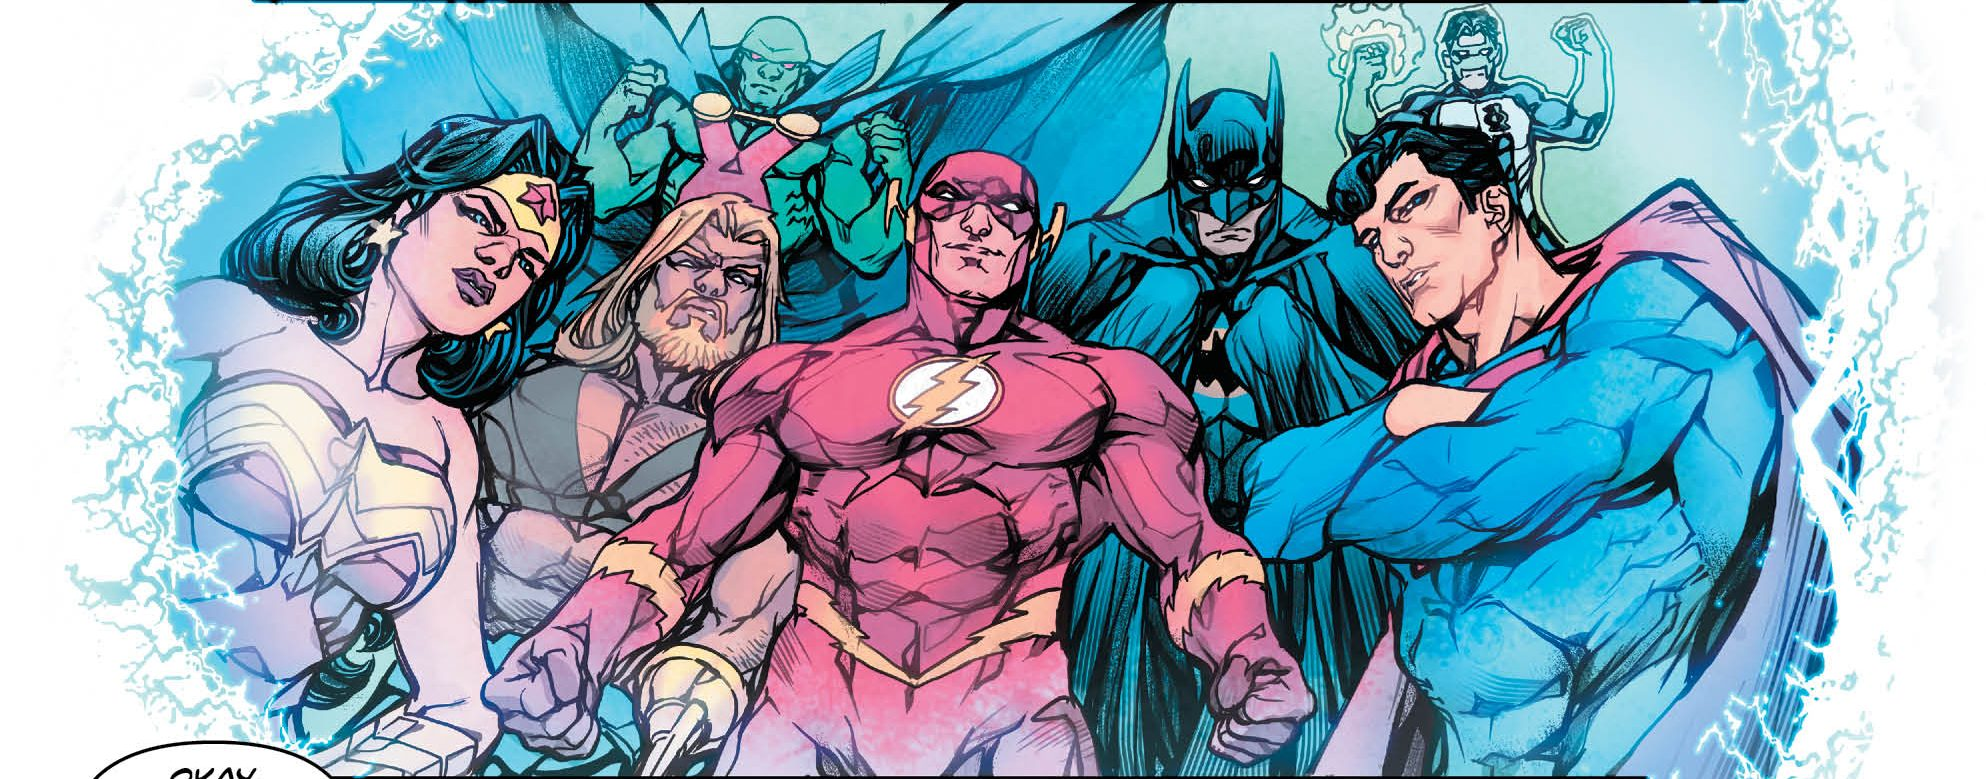 The Flash #47 Review: Flash War starts here!